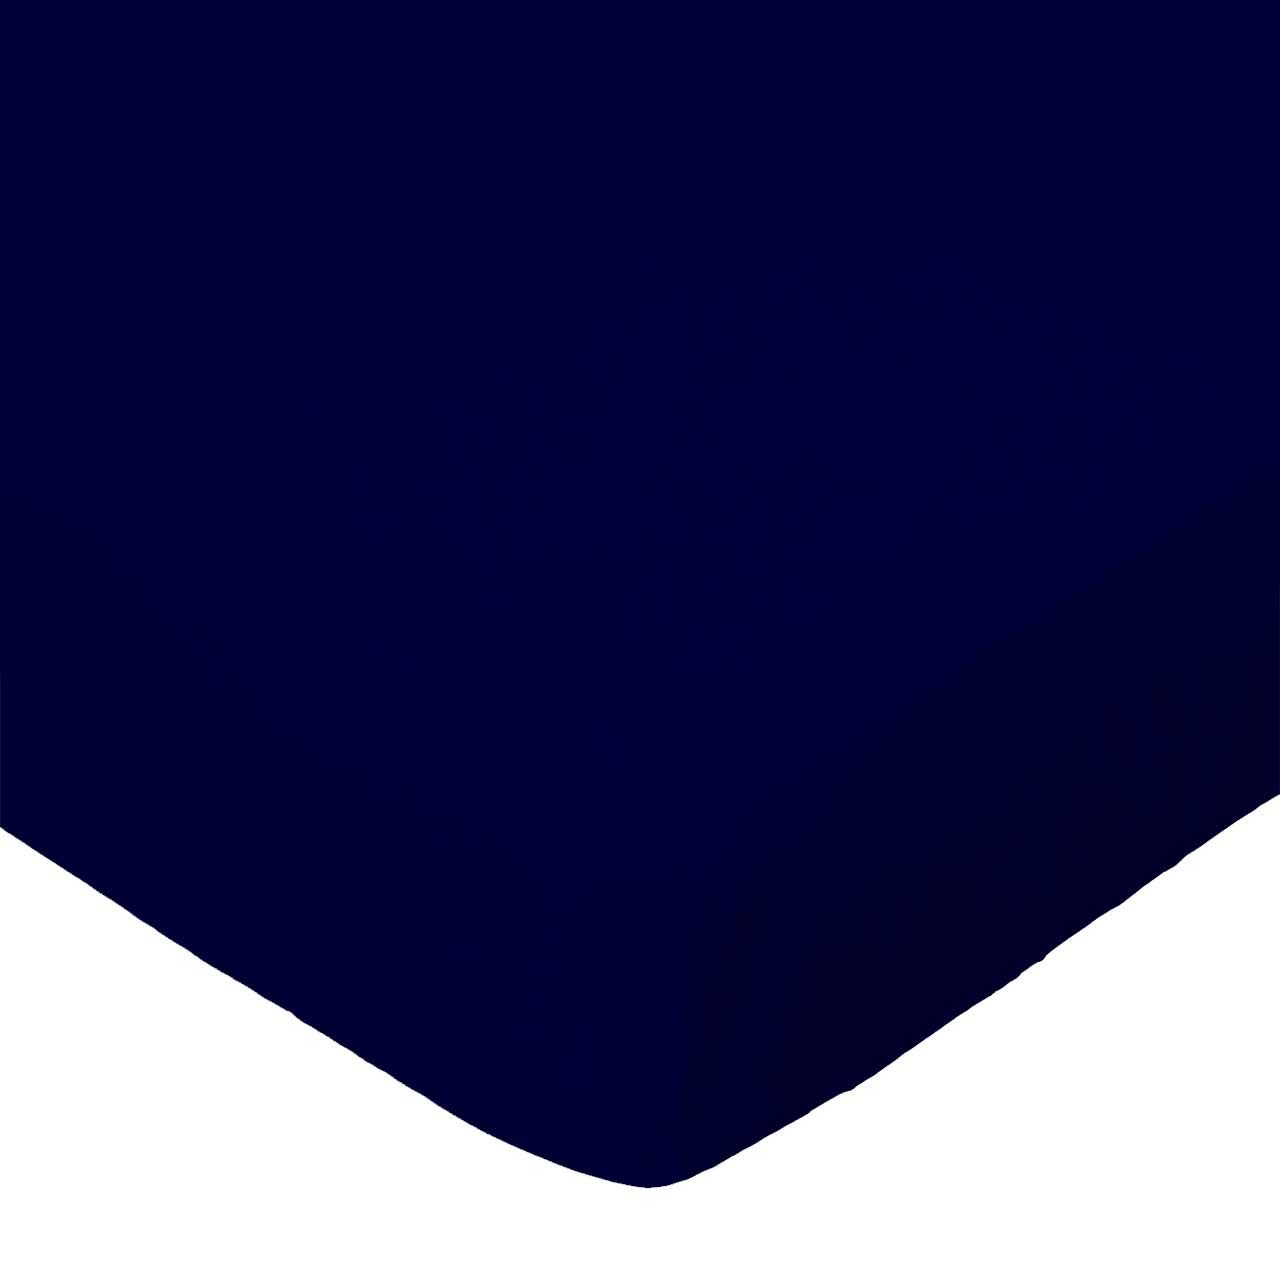 SheetWorld Fitted Sheet (Fits BabyBjorn Travel Crib Light) - Solid Navy Woven - Made In USA